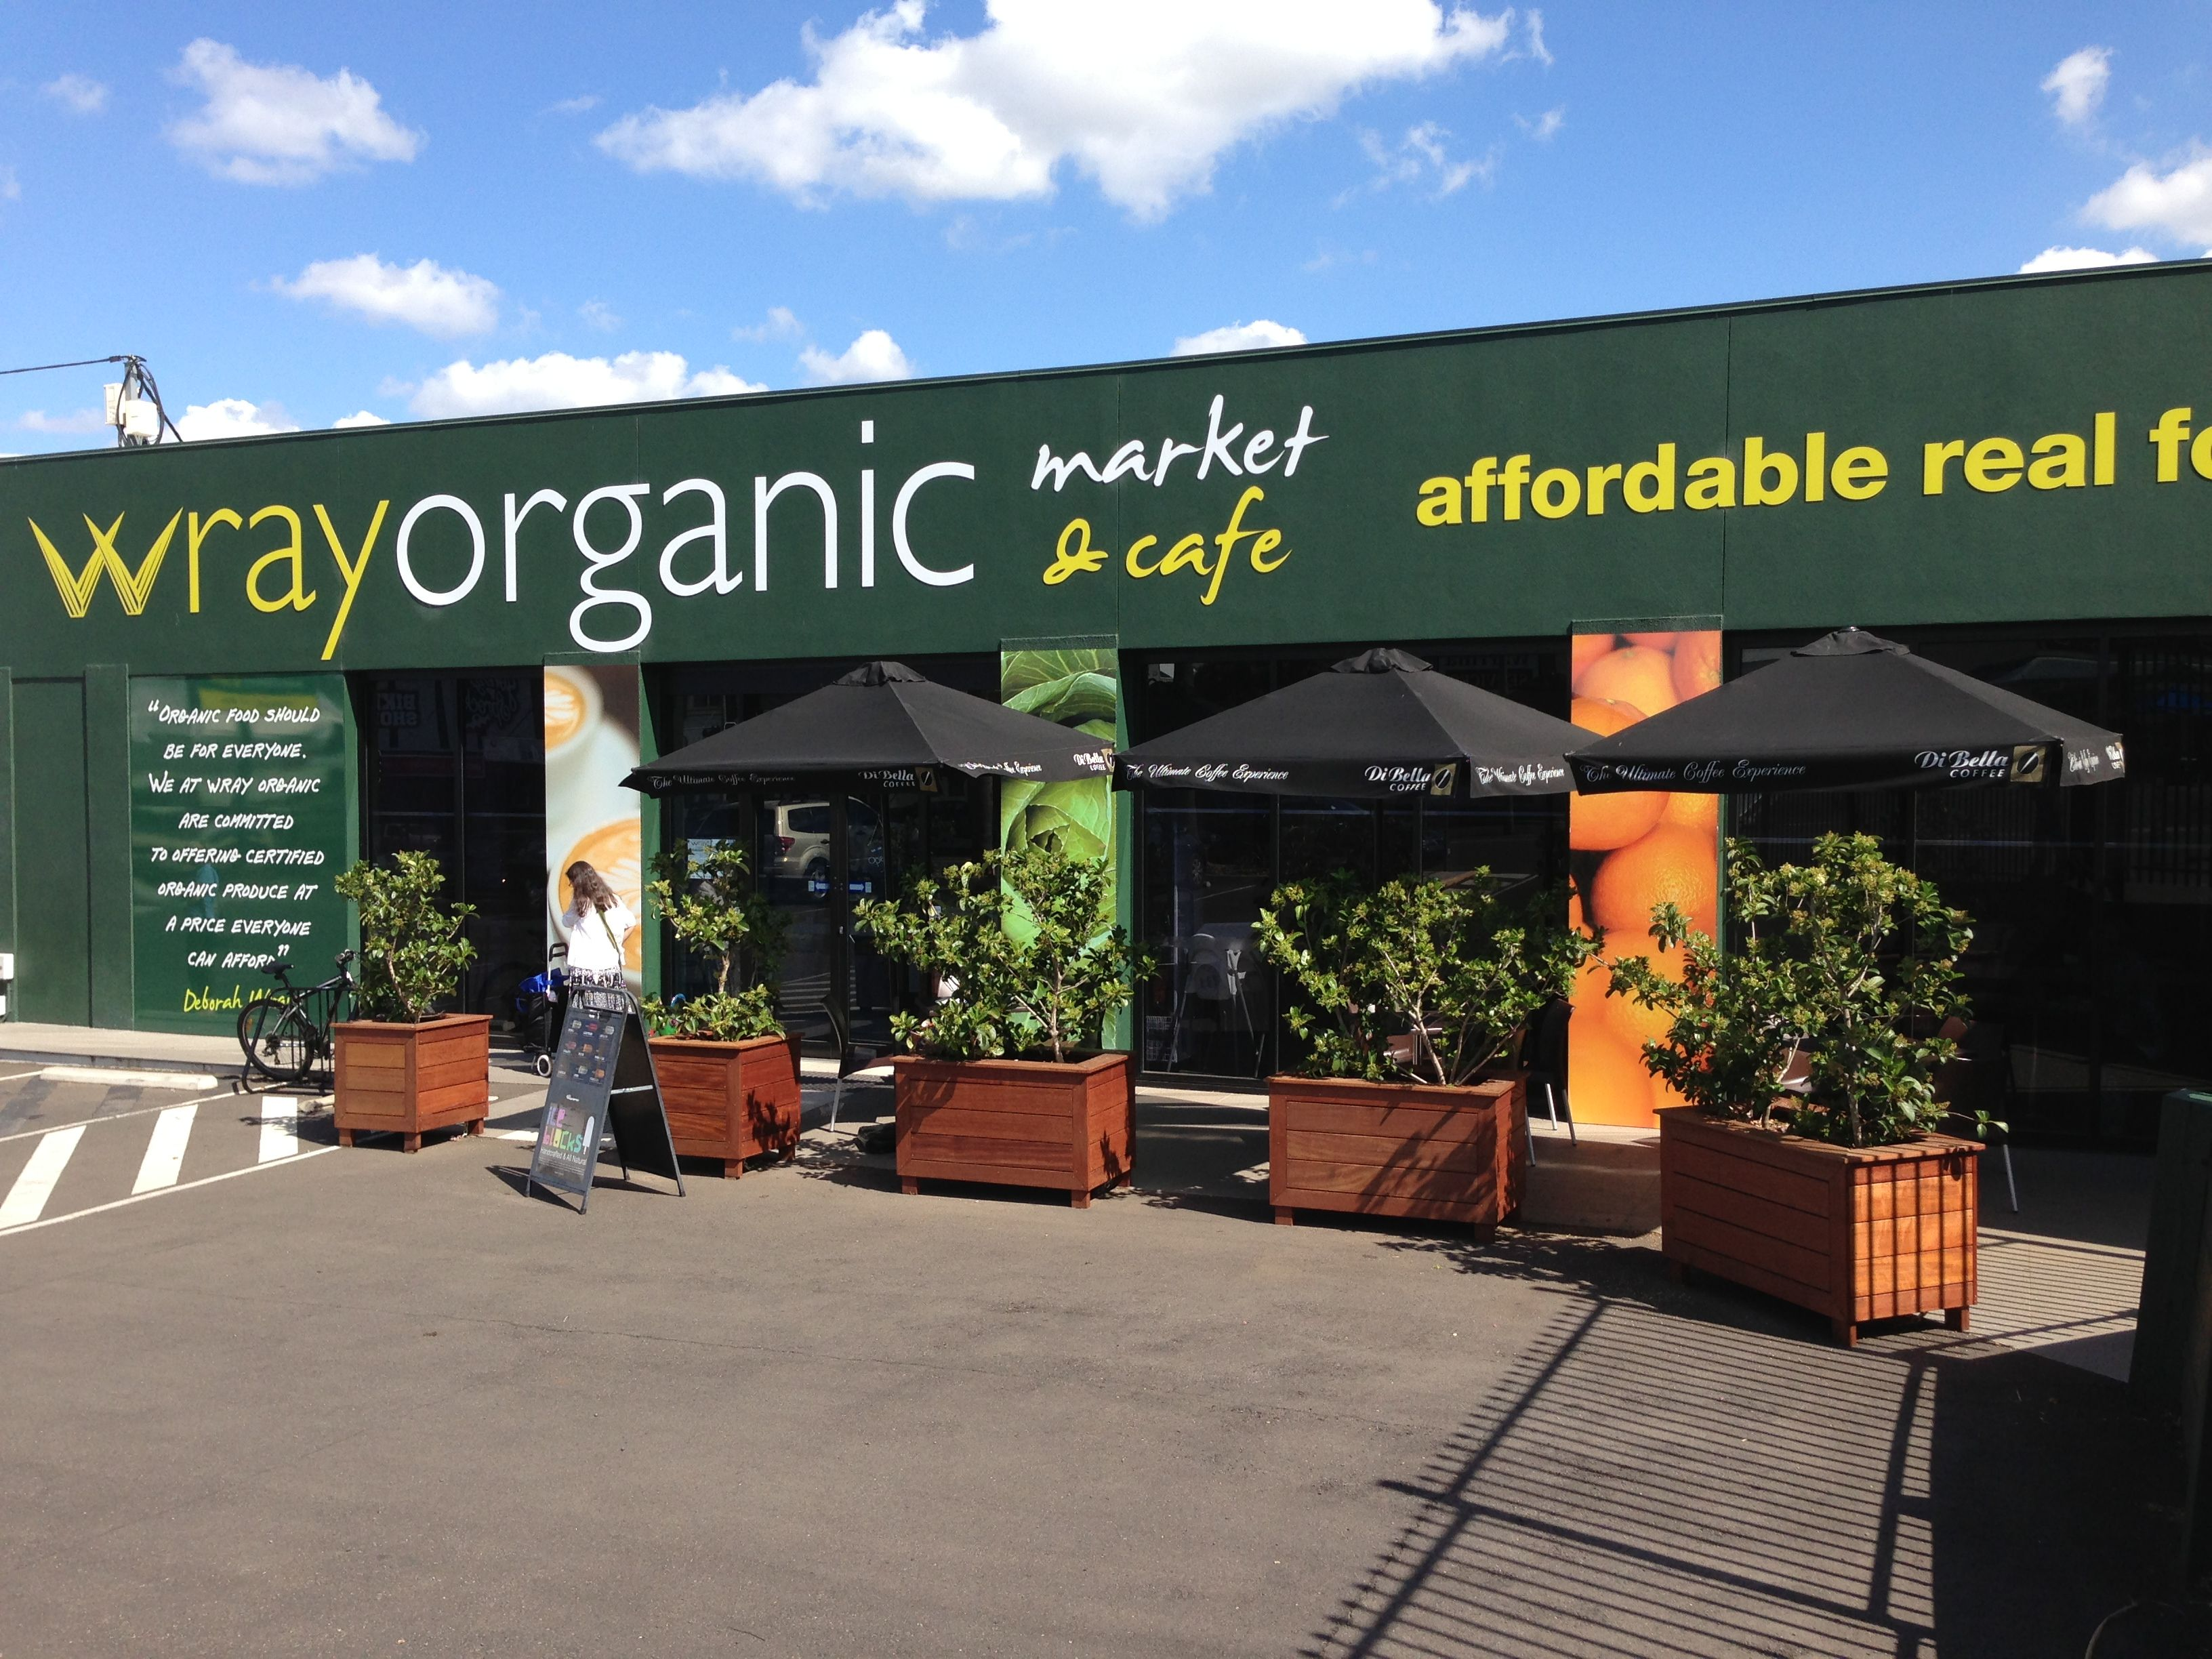 Wray Organic Market Cafe At Toowoomba Queensland Australia Find This Pin And More On Food Business Ideas